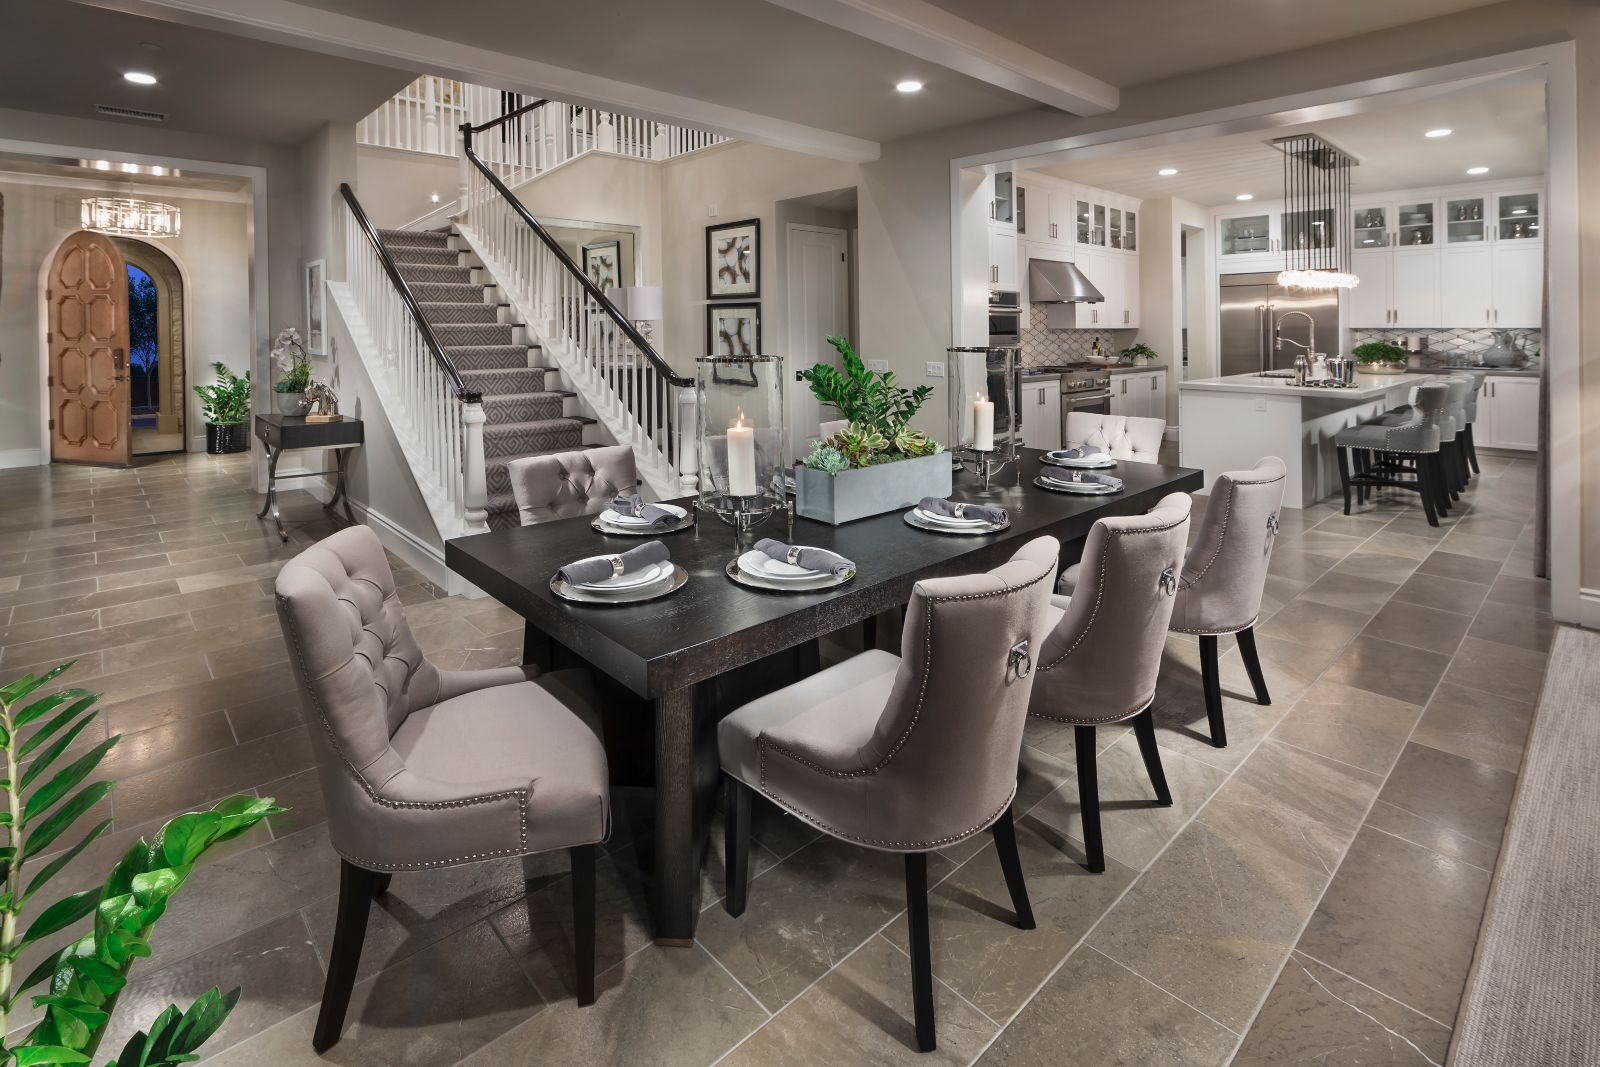 Dining Room | Beverly at Eastwood Village in Irvine, CA | Brookfield Residential